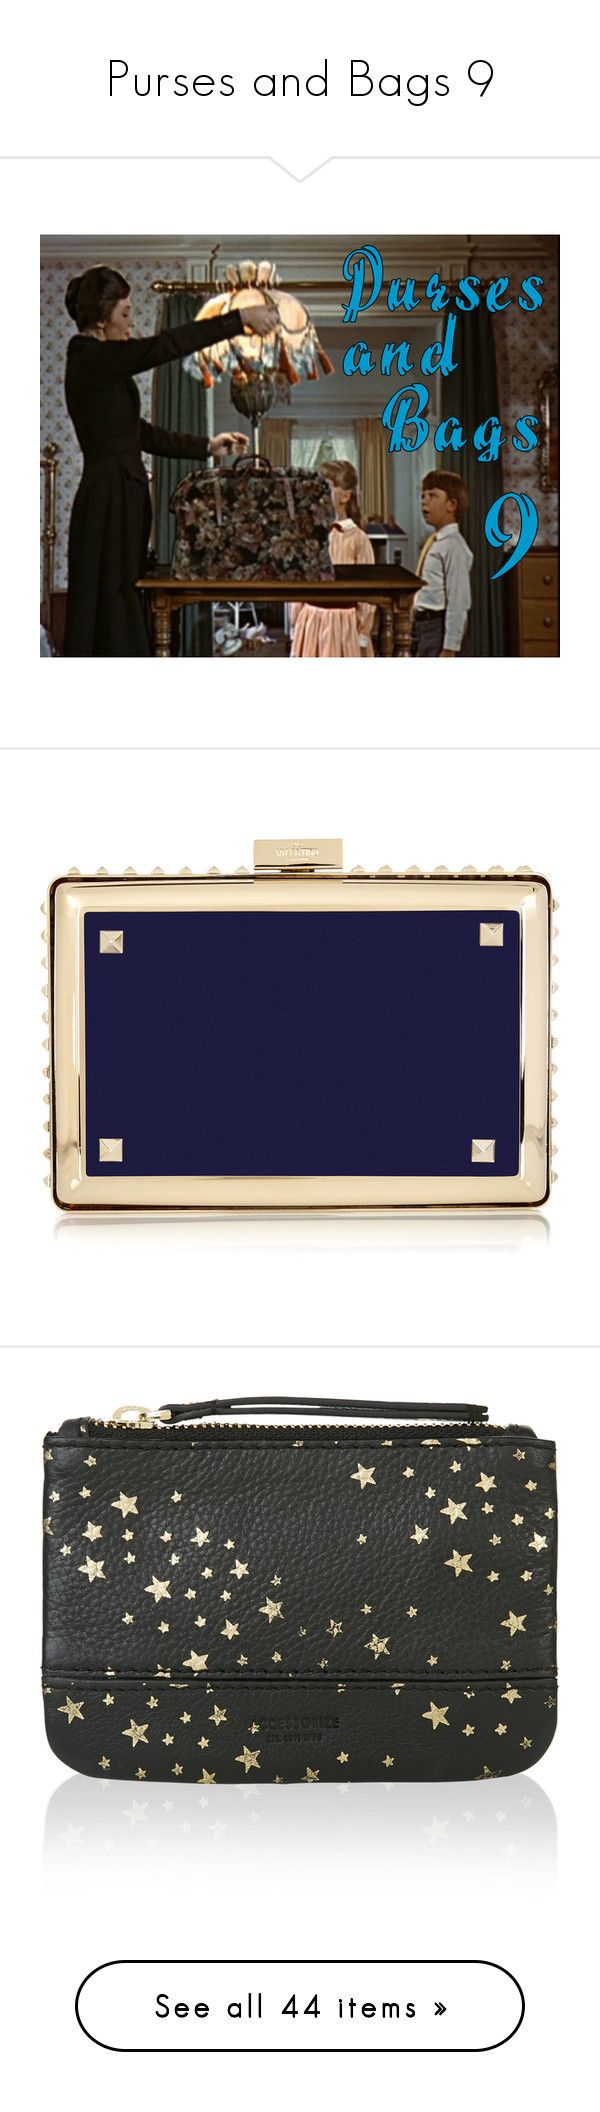 """""""Purses and Bags 9"""" by mouserz-wuz-here ❤ liked on Polyvore featuring bags, handbags, clutches, bolsas, purses, navy, navy blue purse, chain strap purse, man bag and valentino handbags"""